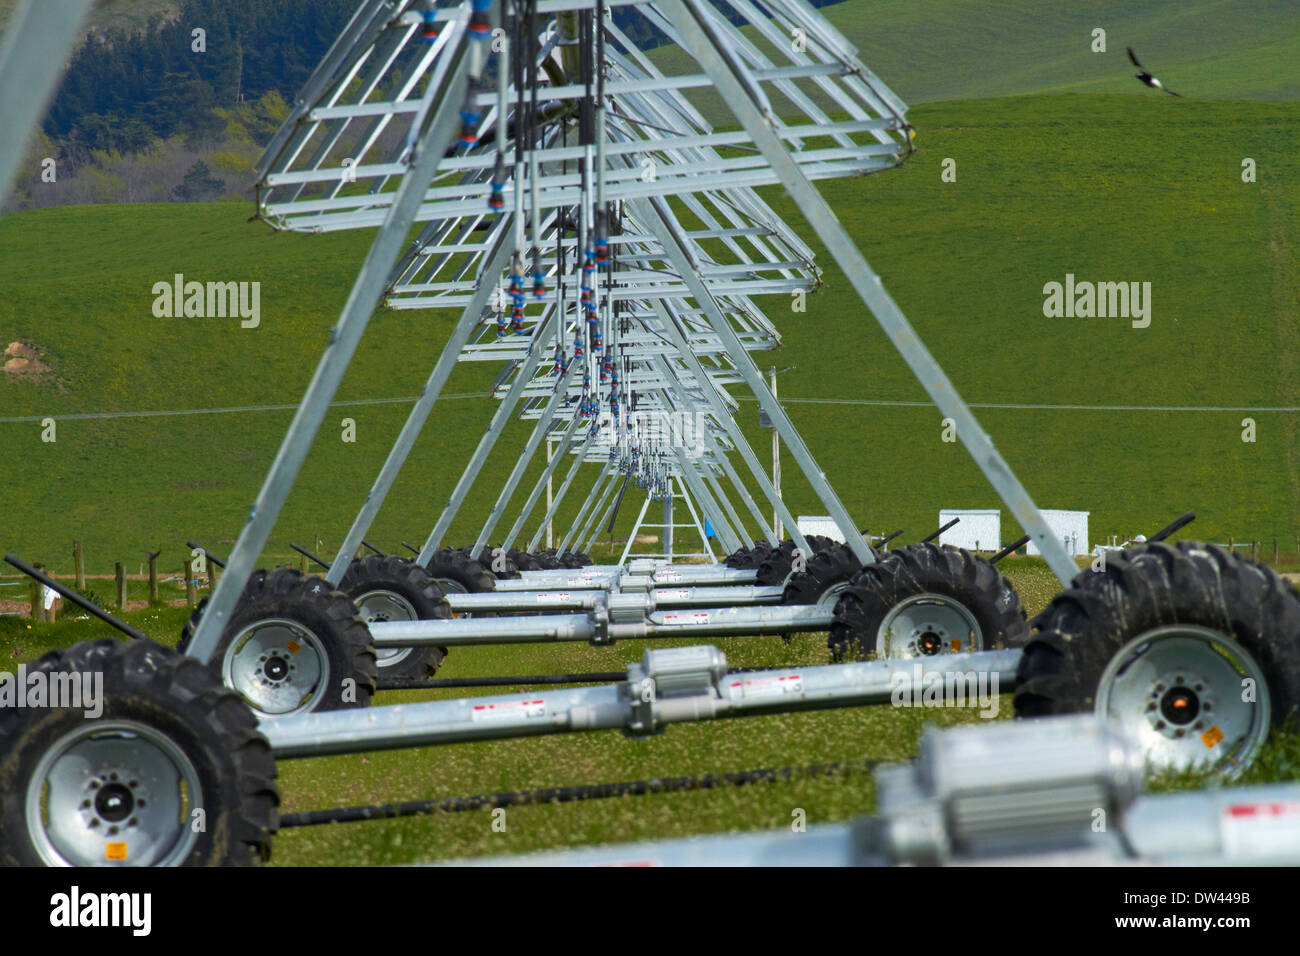 Centre pivot irrigation, near Culverden, North Canterbury, South Island, New Zealand - Stock Image